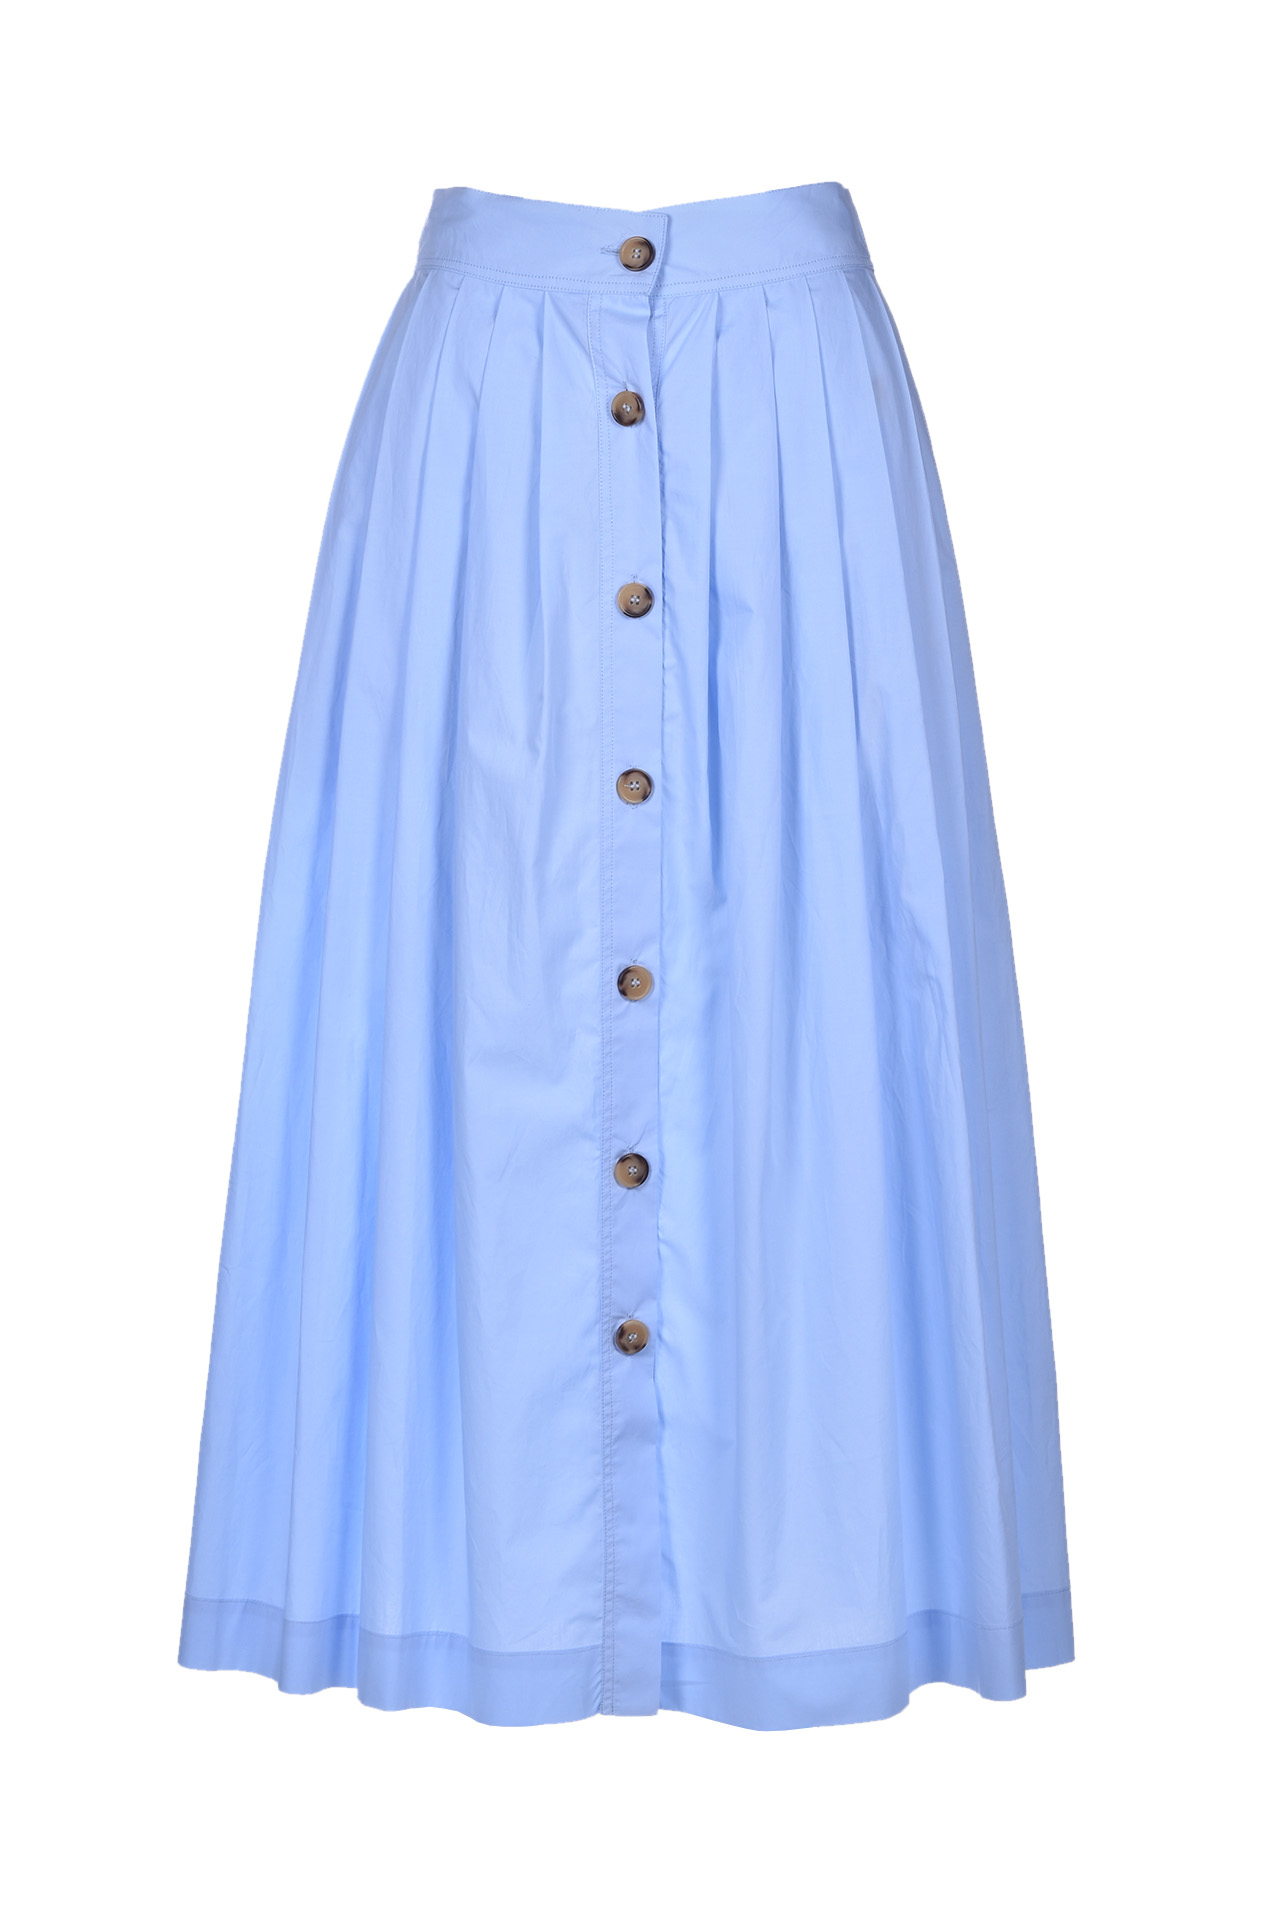 Cotton skirt with buttons - light blue JUCCA | Skirts | J31150001640